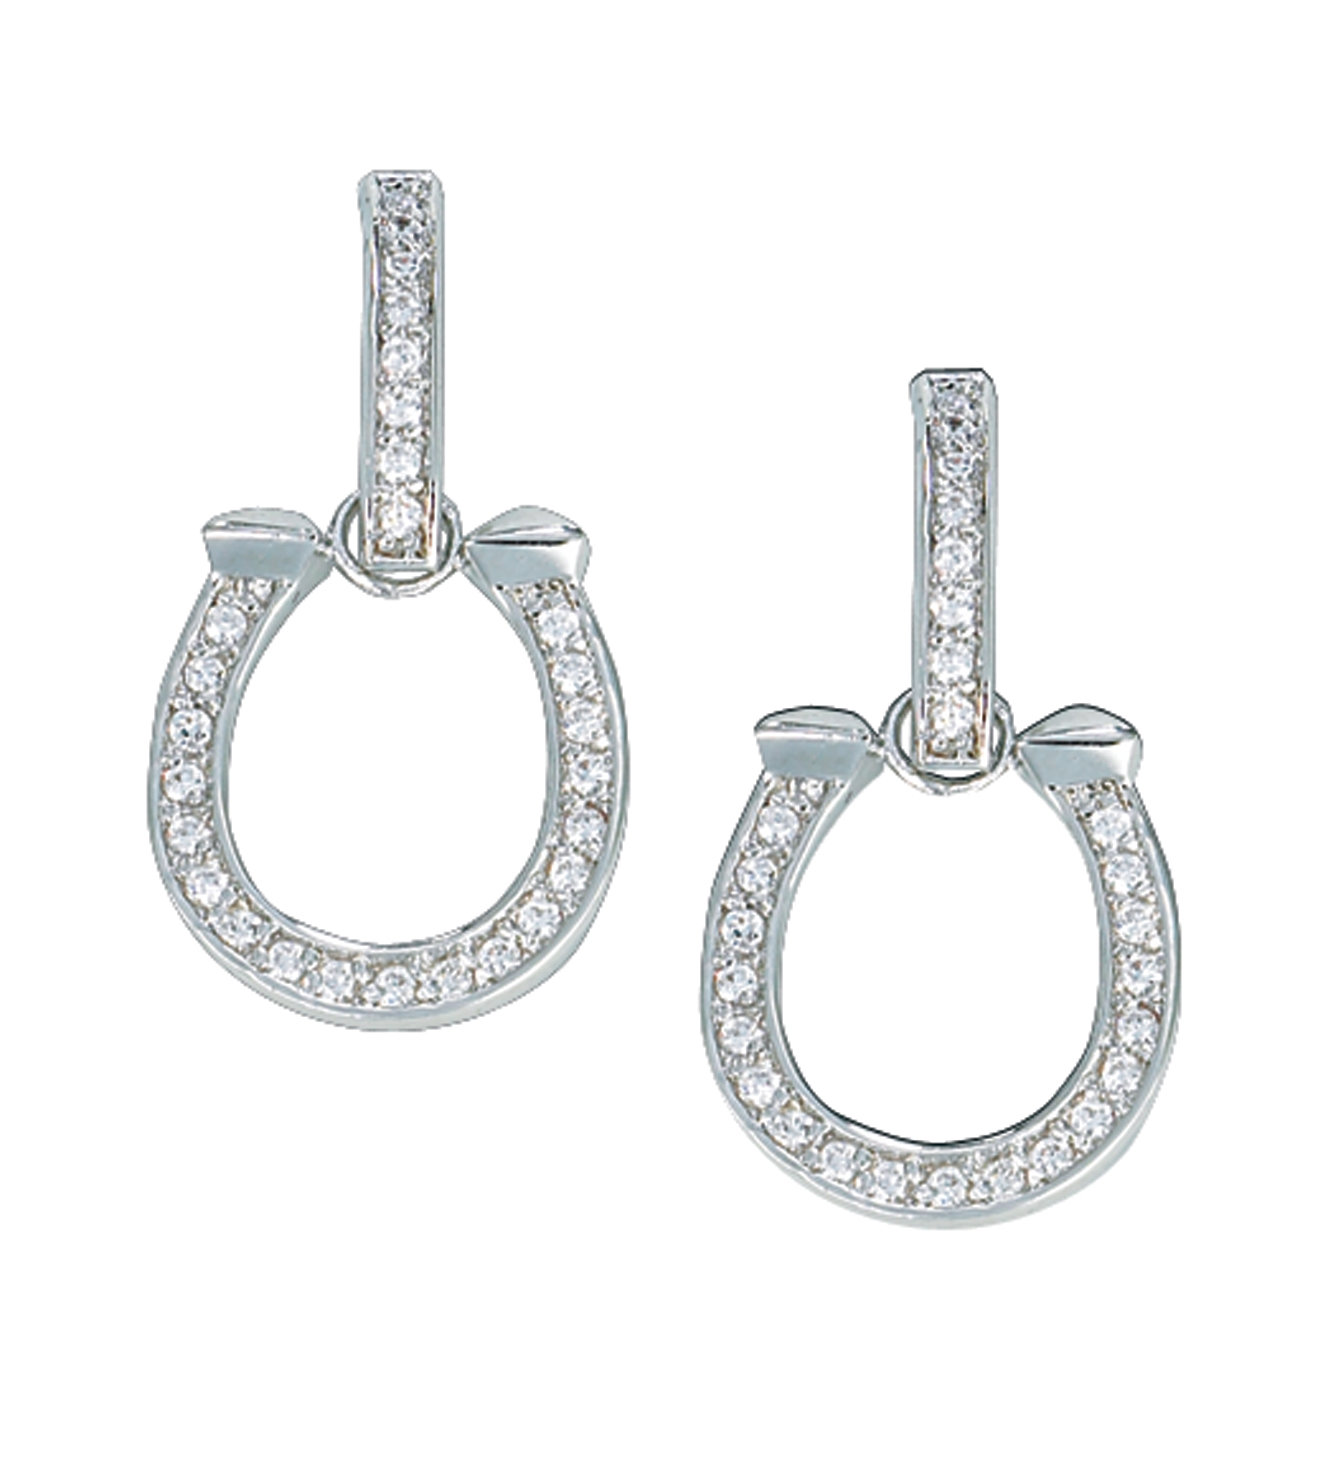 Montana Silversmiths Crystal Bar and Hanging Horseshoe Drop Earrings